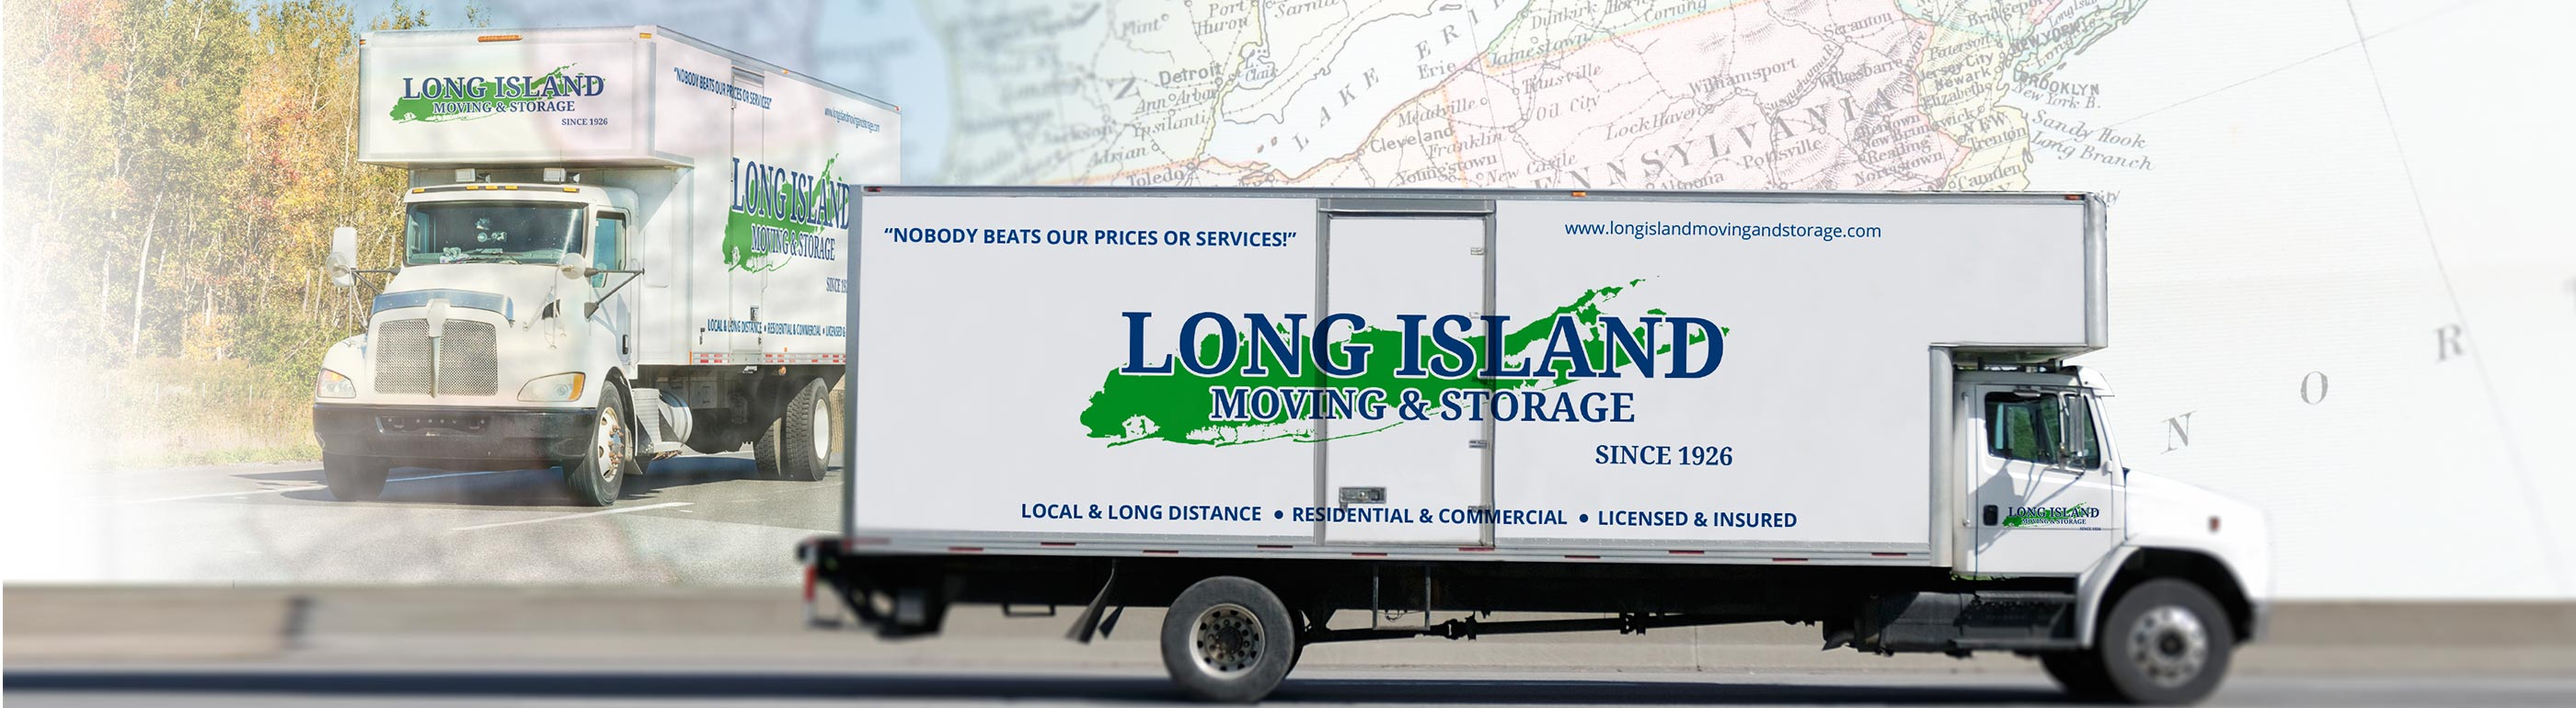 Long Island Moving & Storage Moving Truck